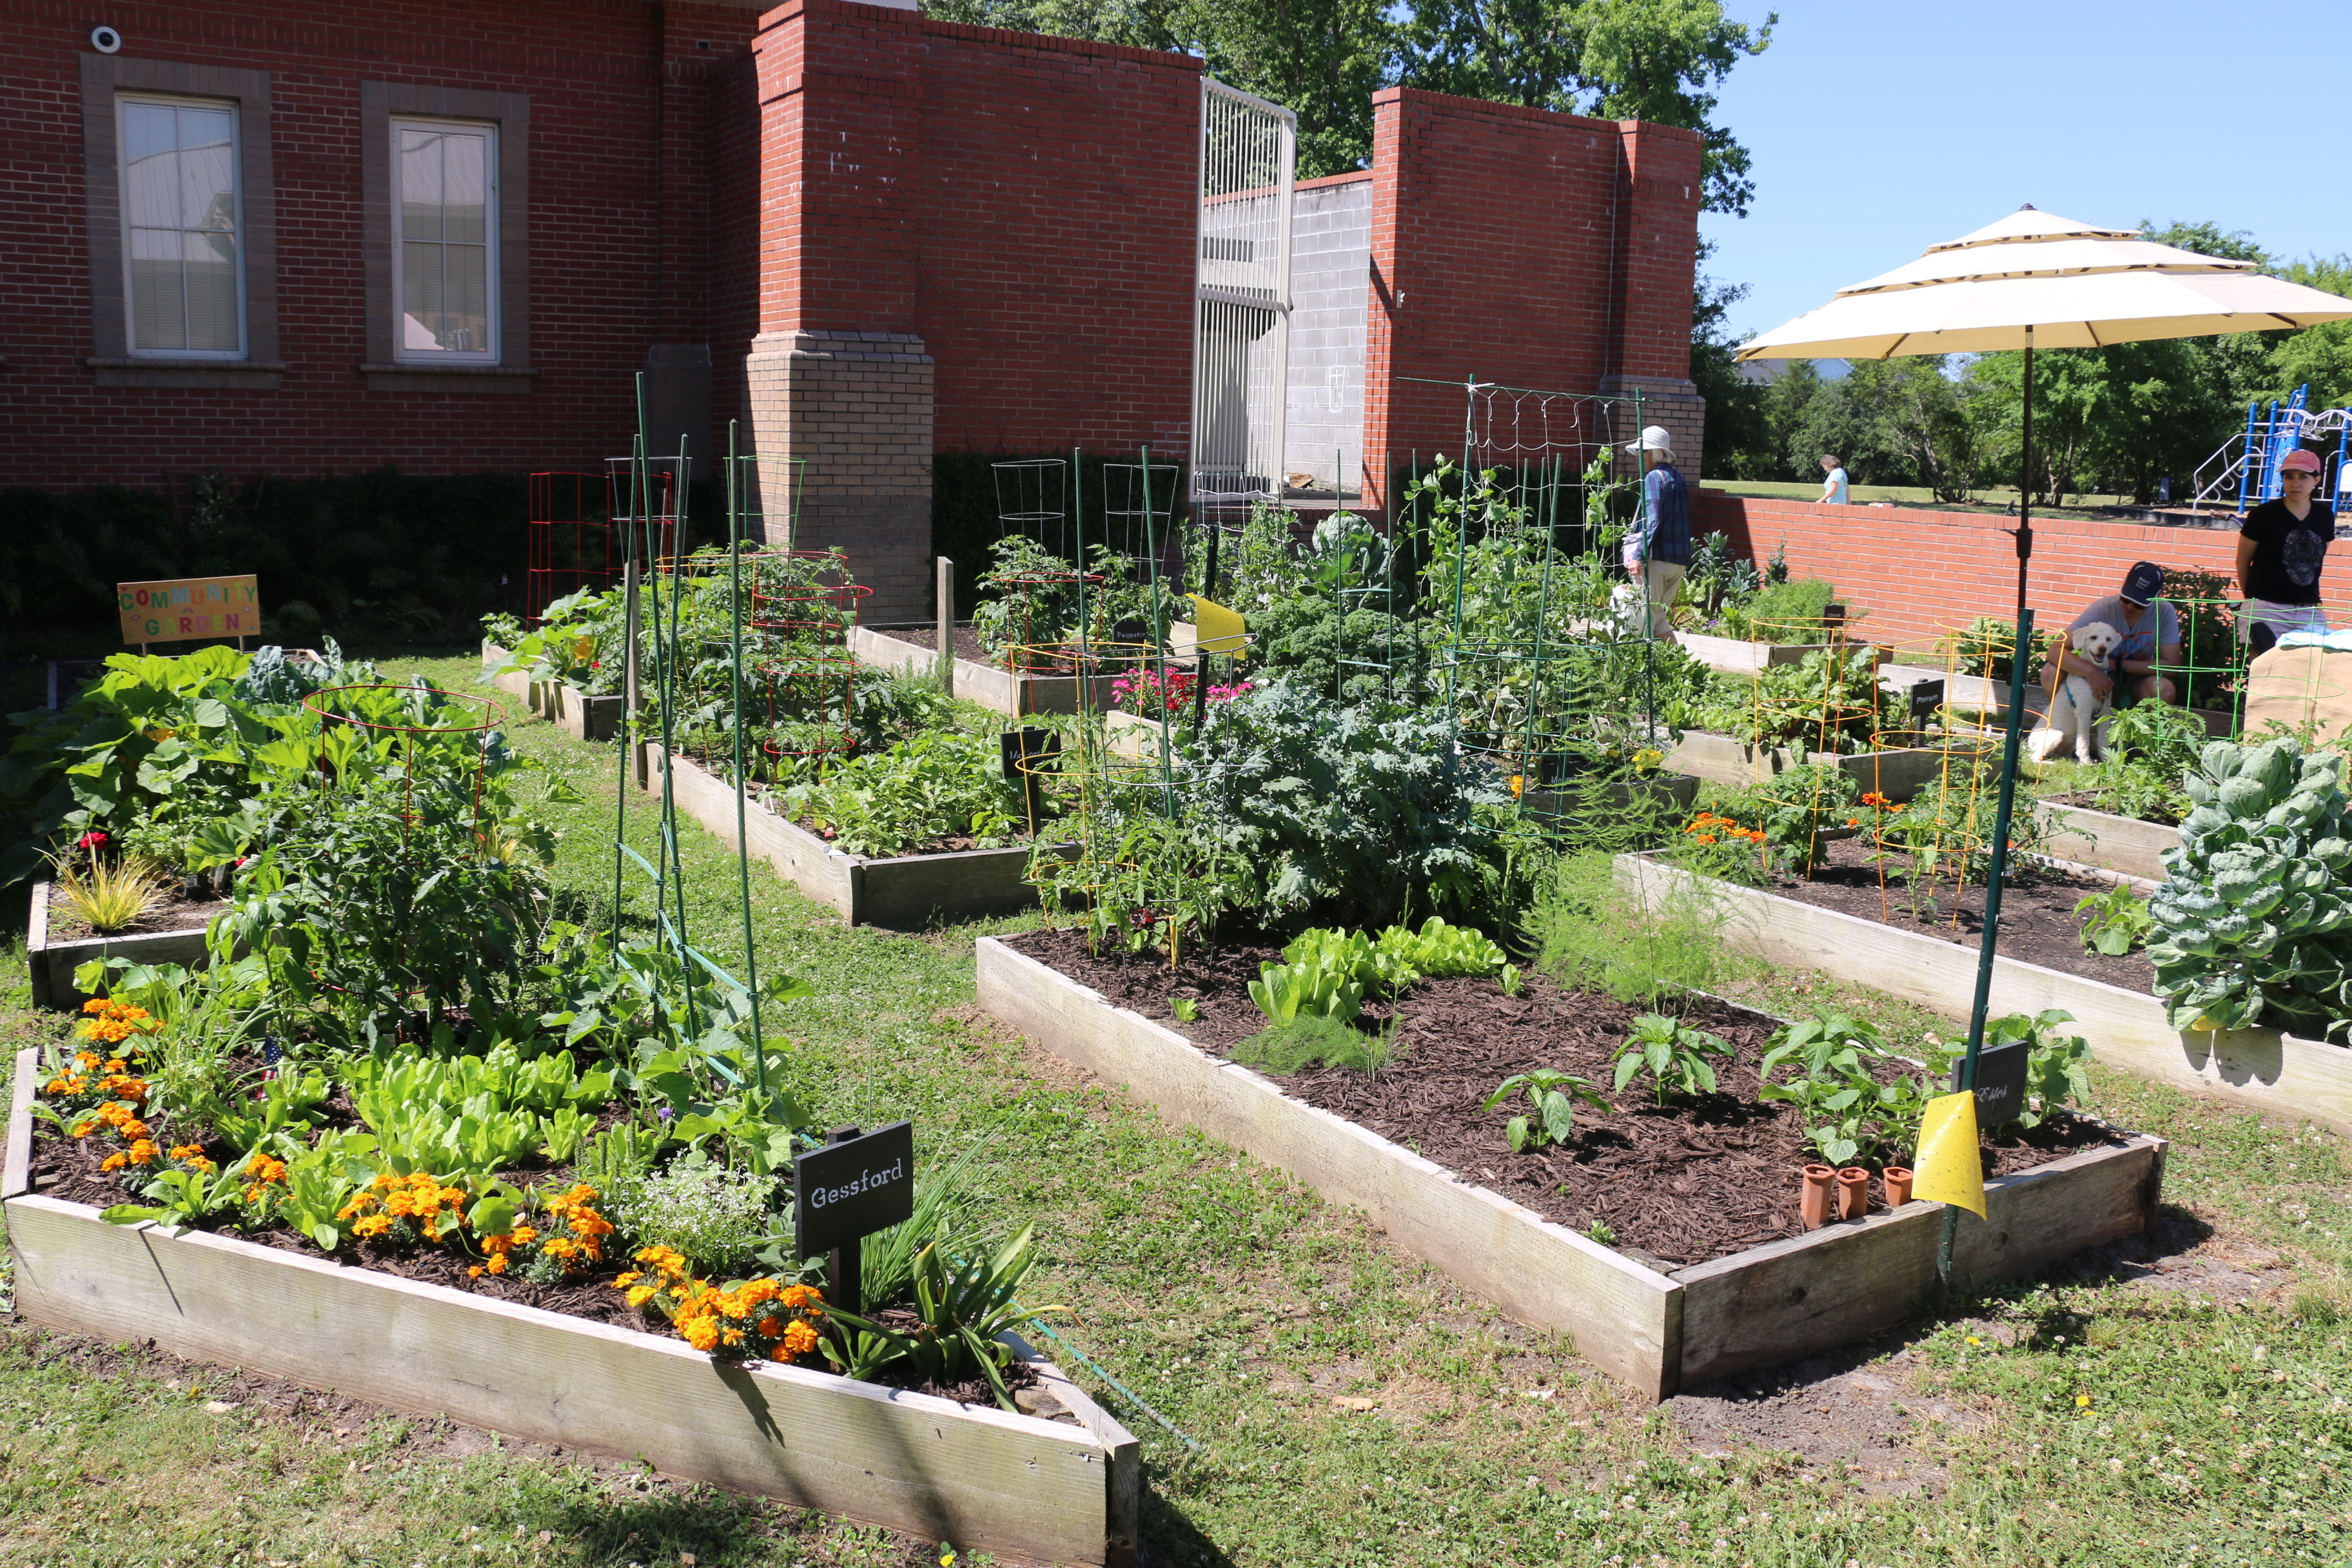 The space includes several small gardens maintained by community members.